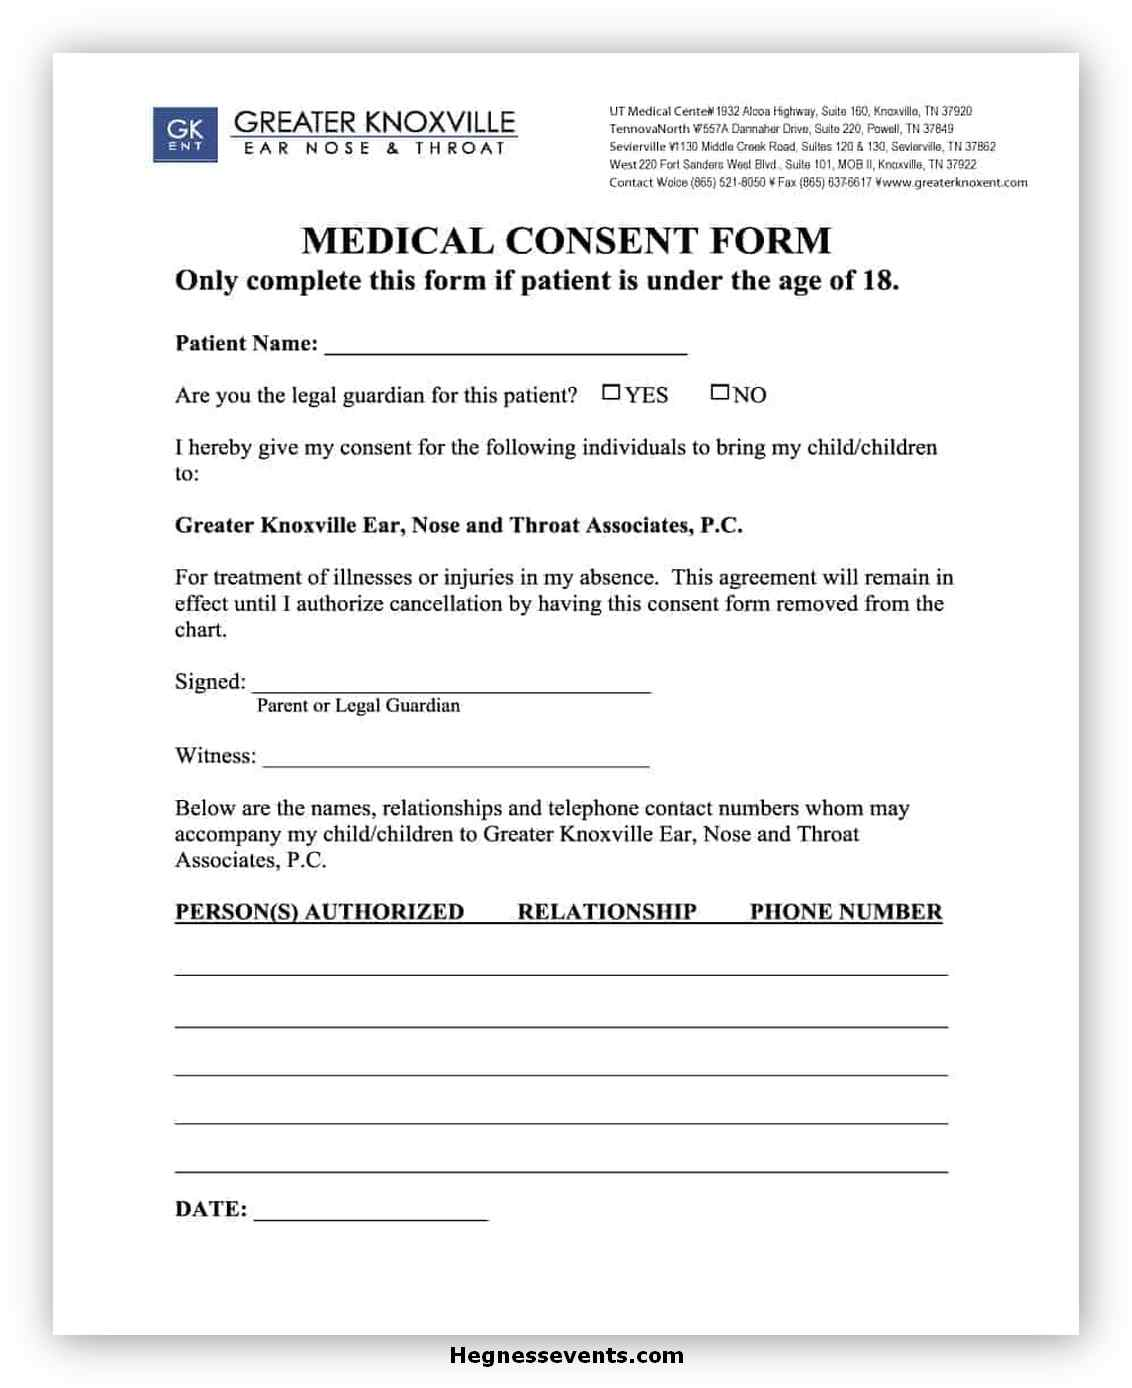 Medical Consent Form Template 09